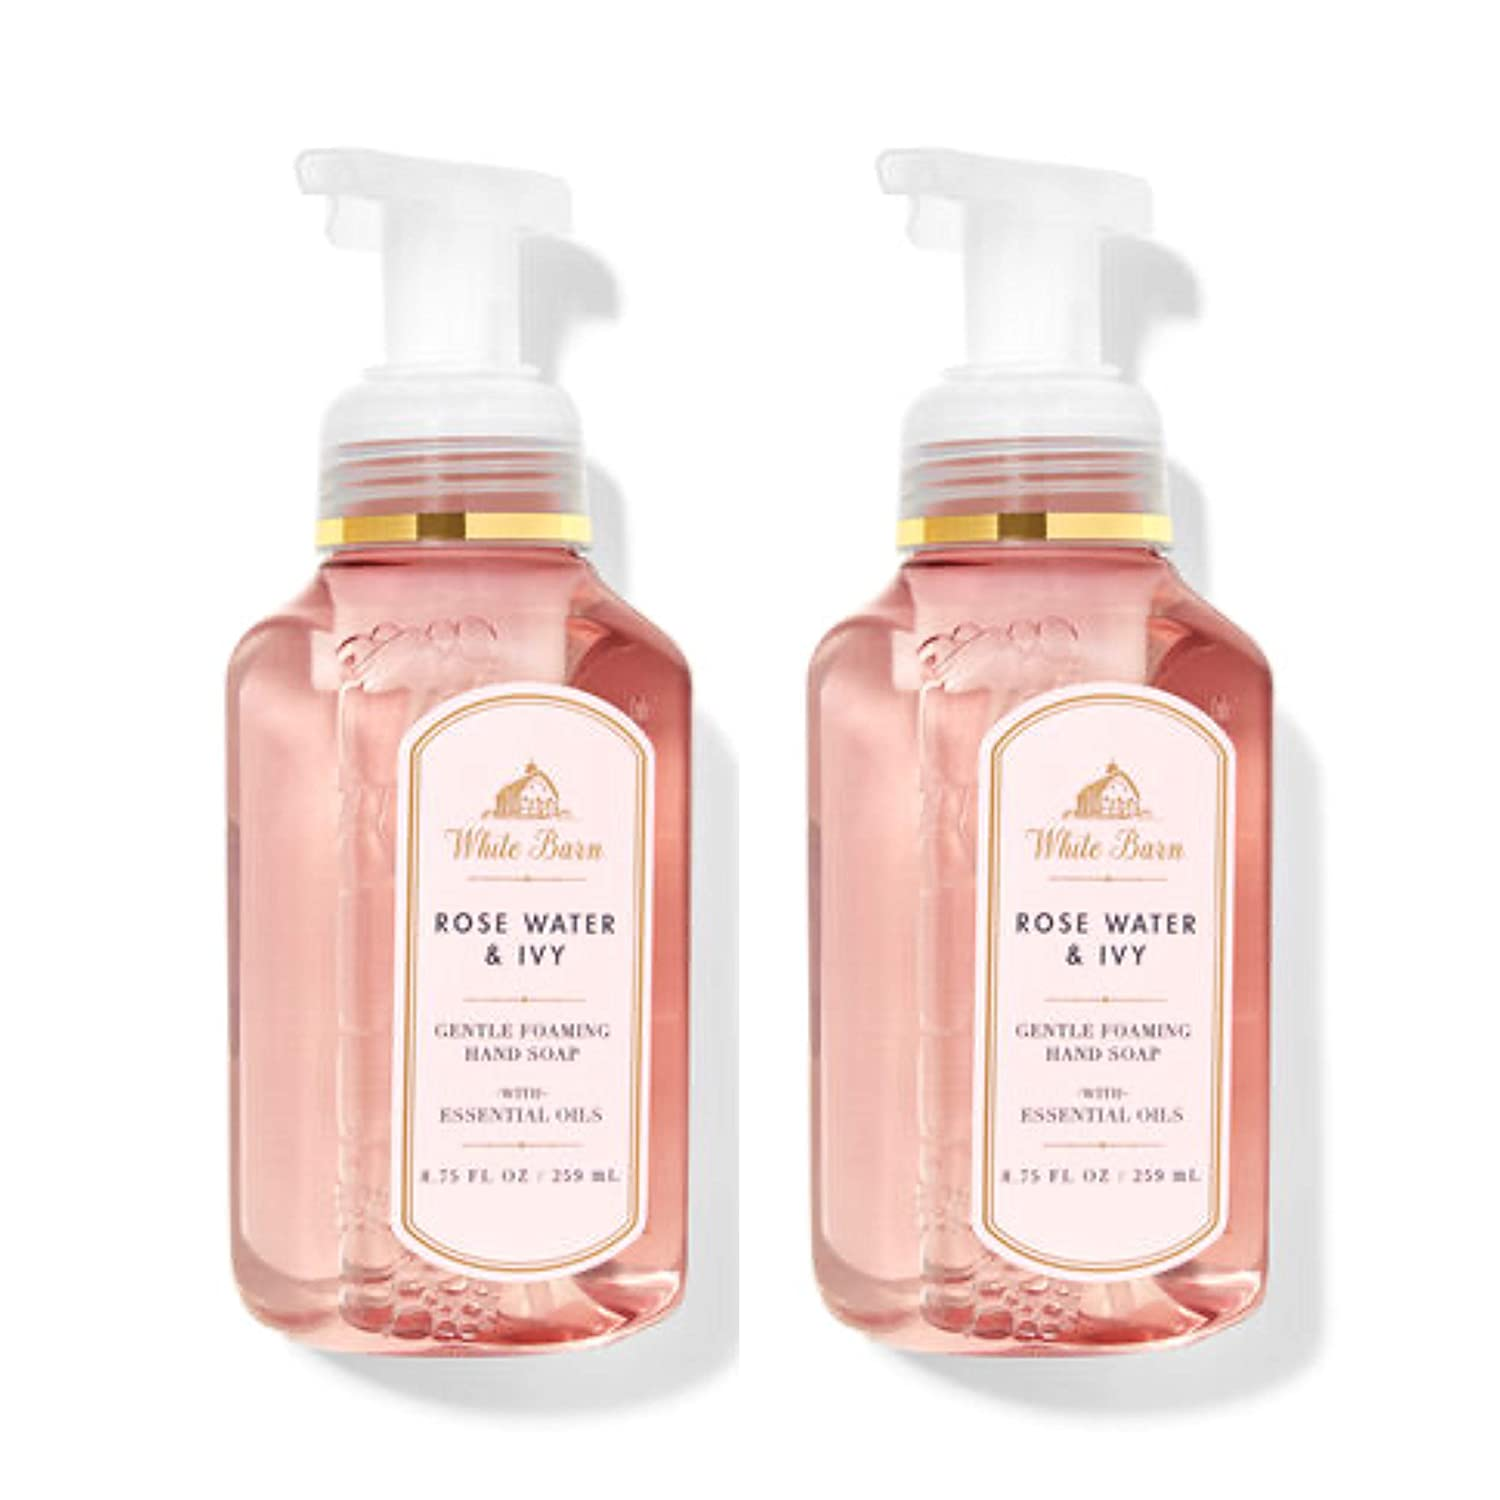 Bath & Body Works Gentle Foaming Hand Soap in ROSE WATER & IVY (Pack of 2)